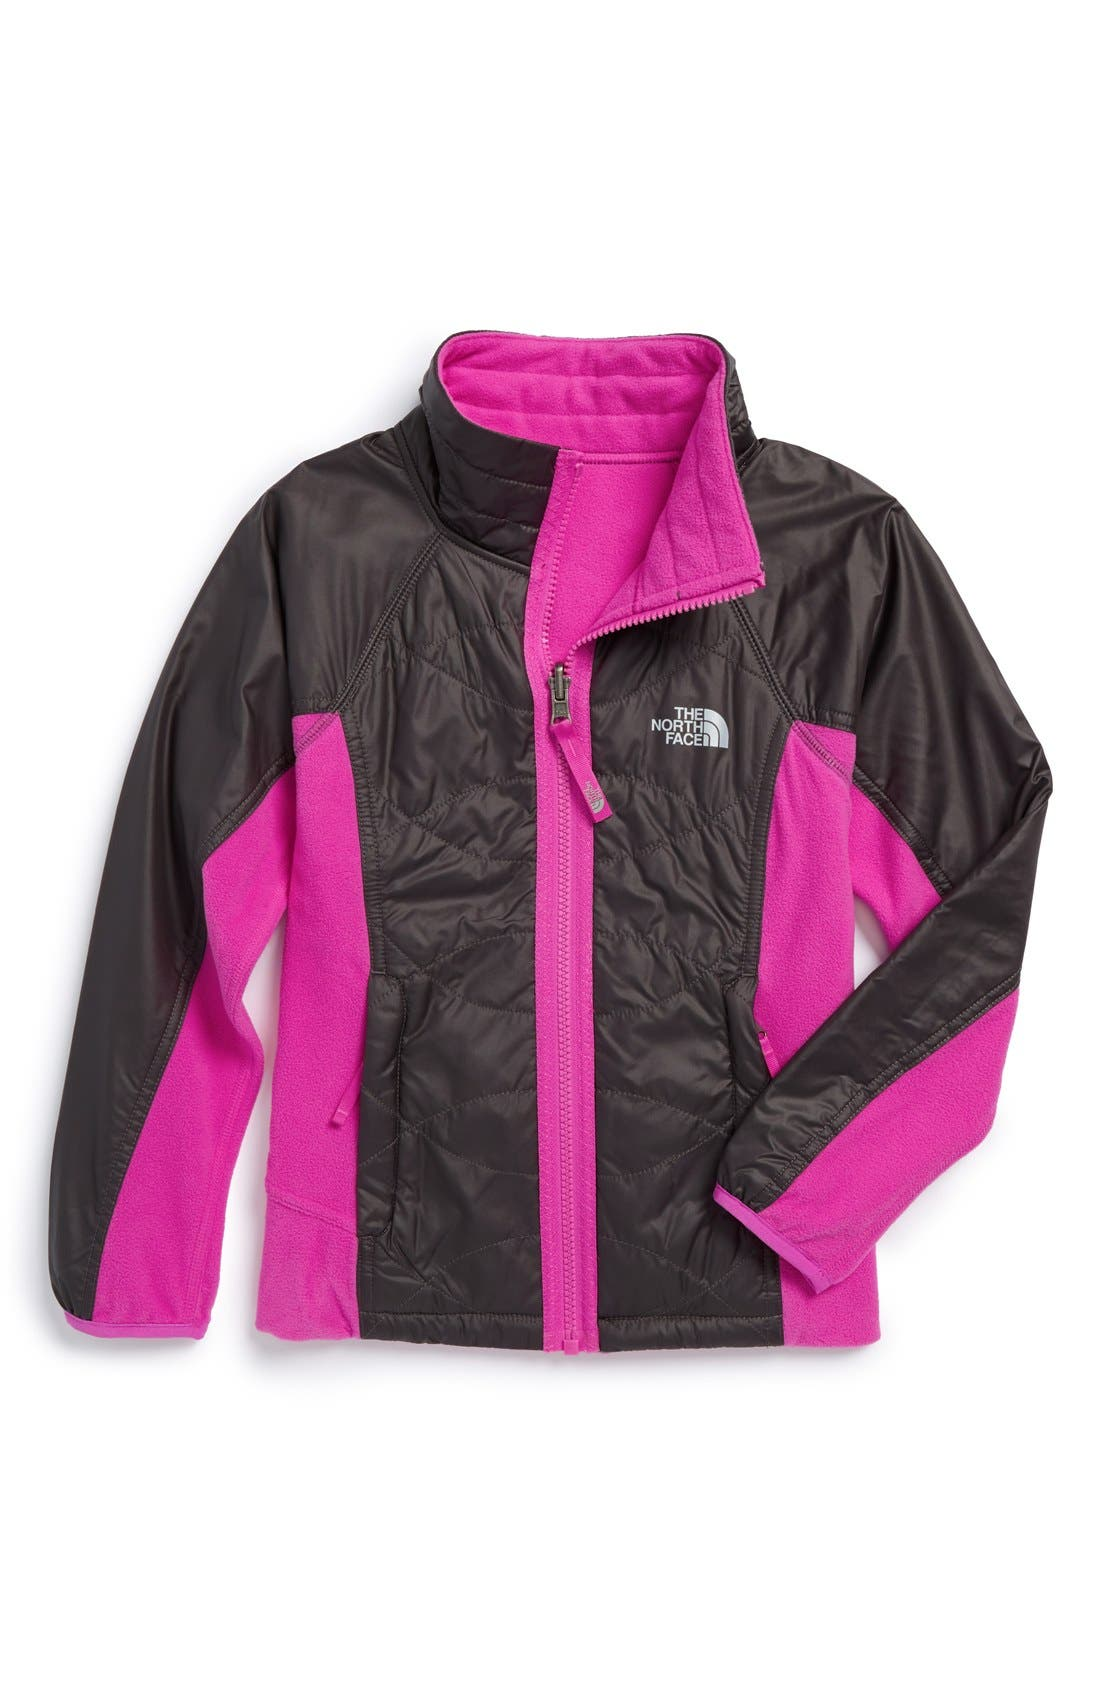 Alternate Image 1 Selected - The North Face 'Madison' Reversible Jacket (Big Girl)